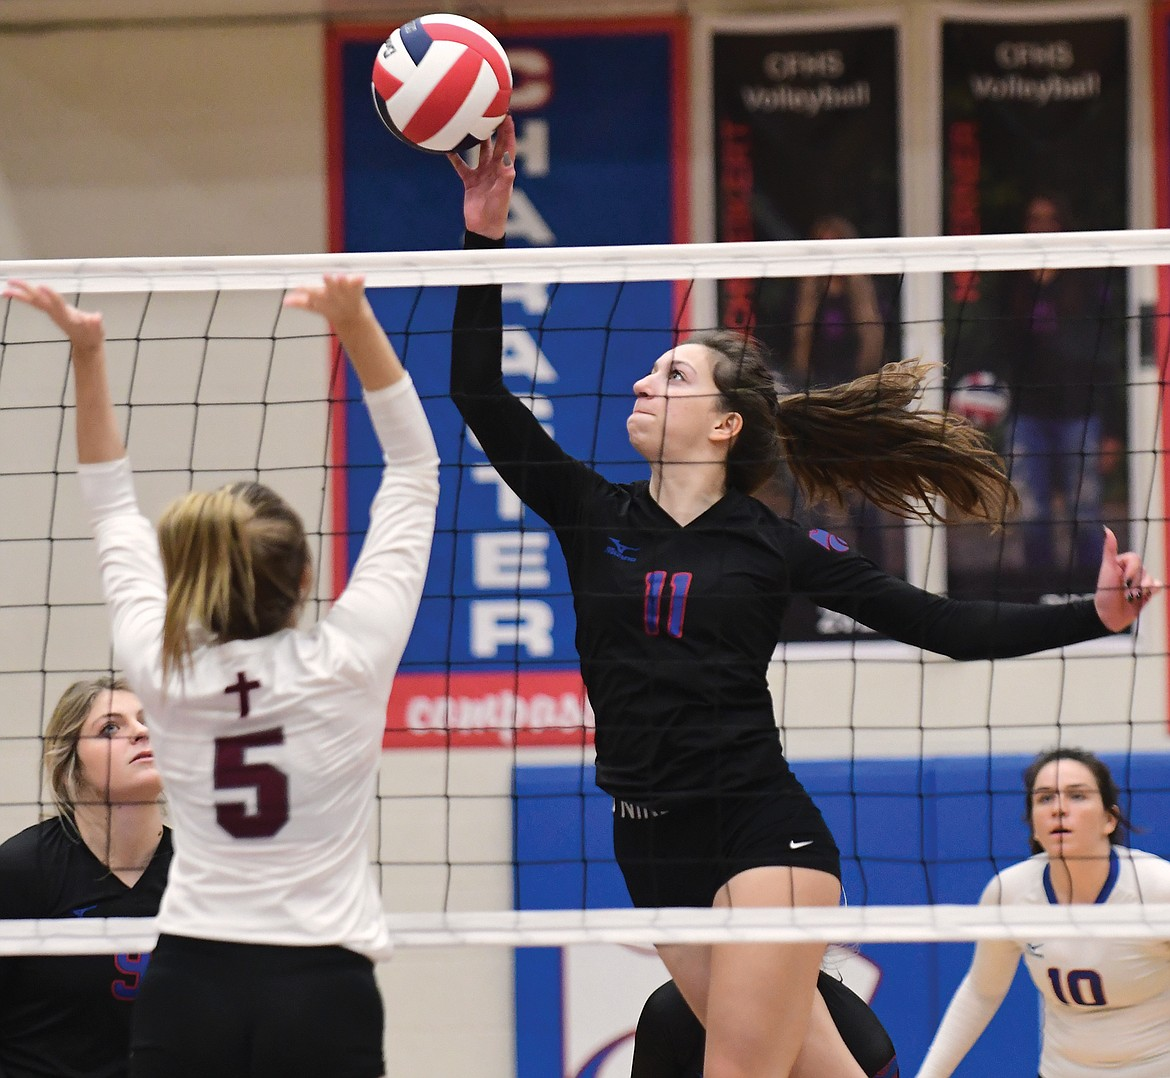 Jazzy Marino taps the ball over the net against Central on Thursday. (Teresa Byrd/Hungry Horse News)